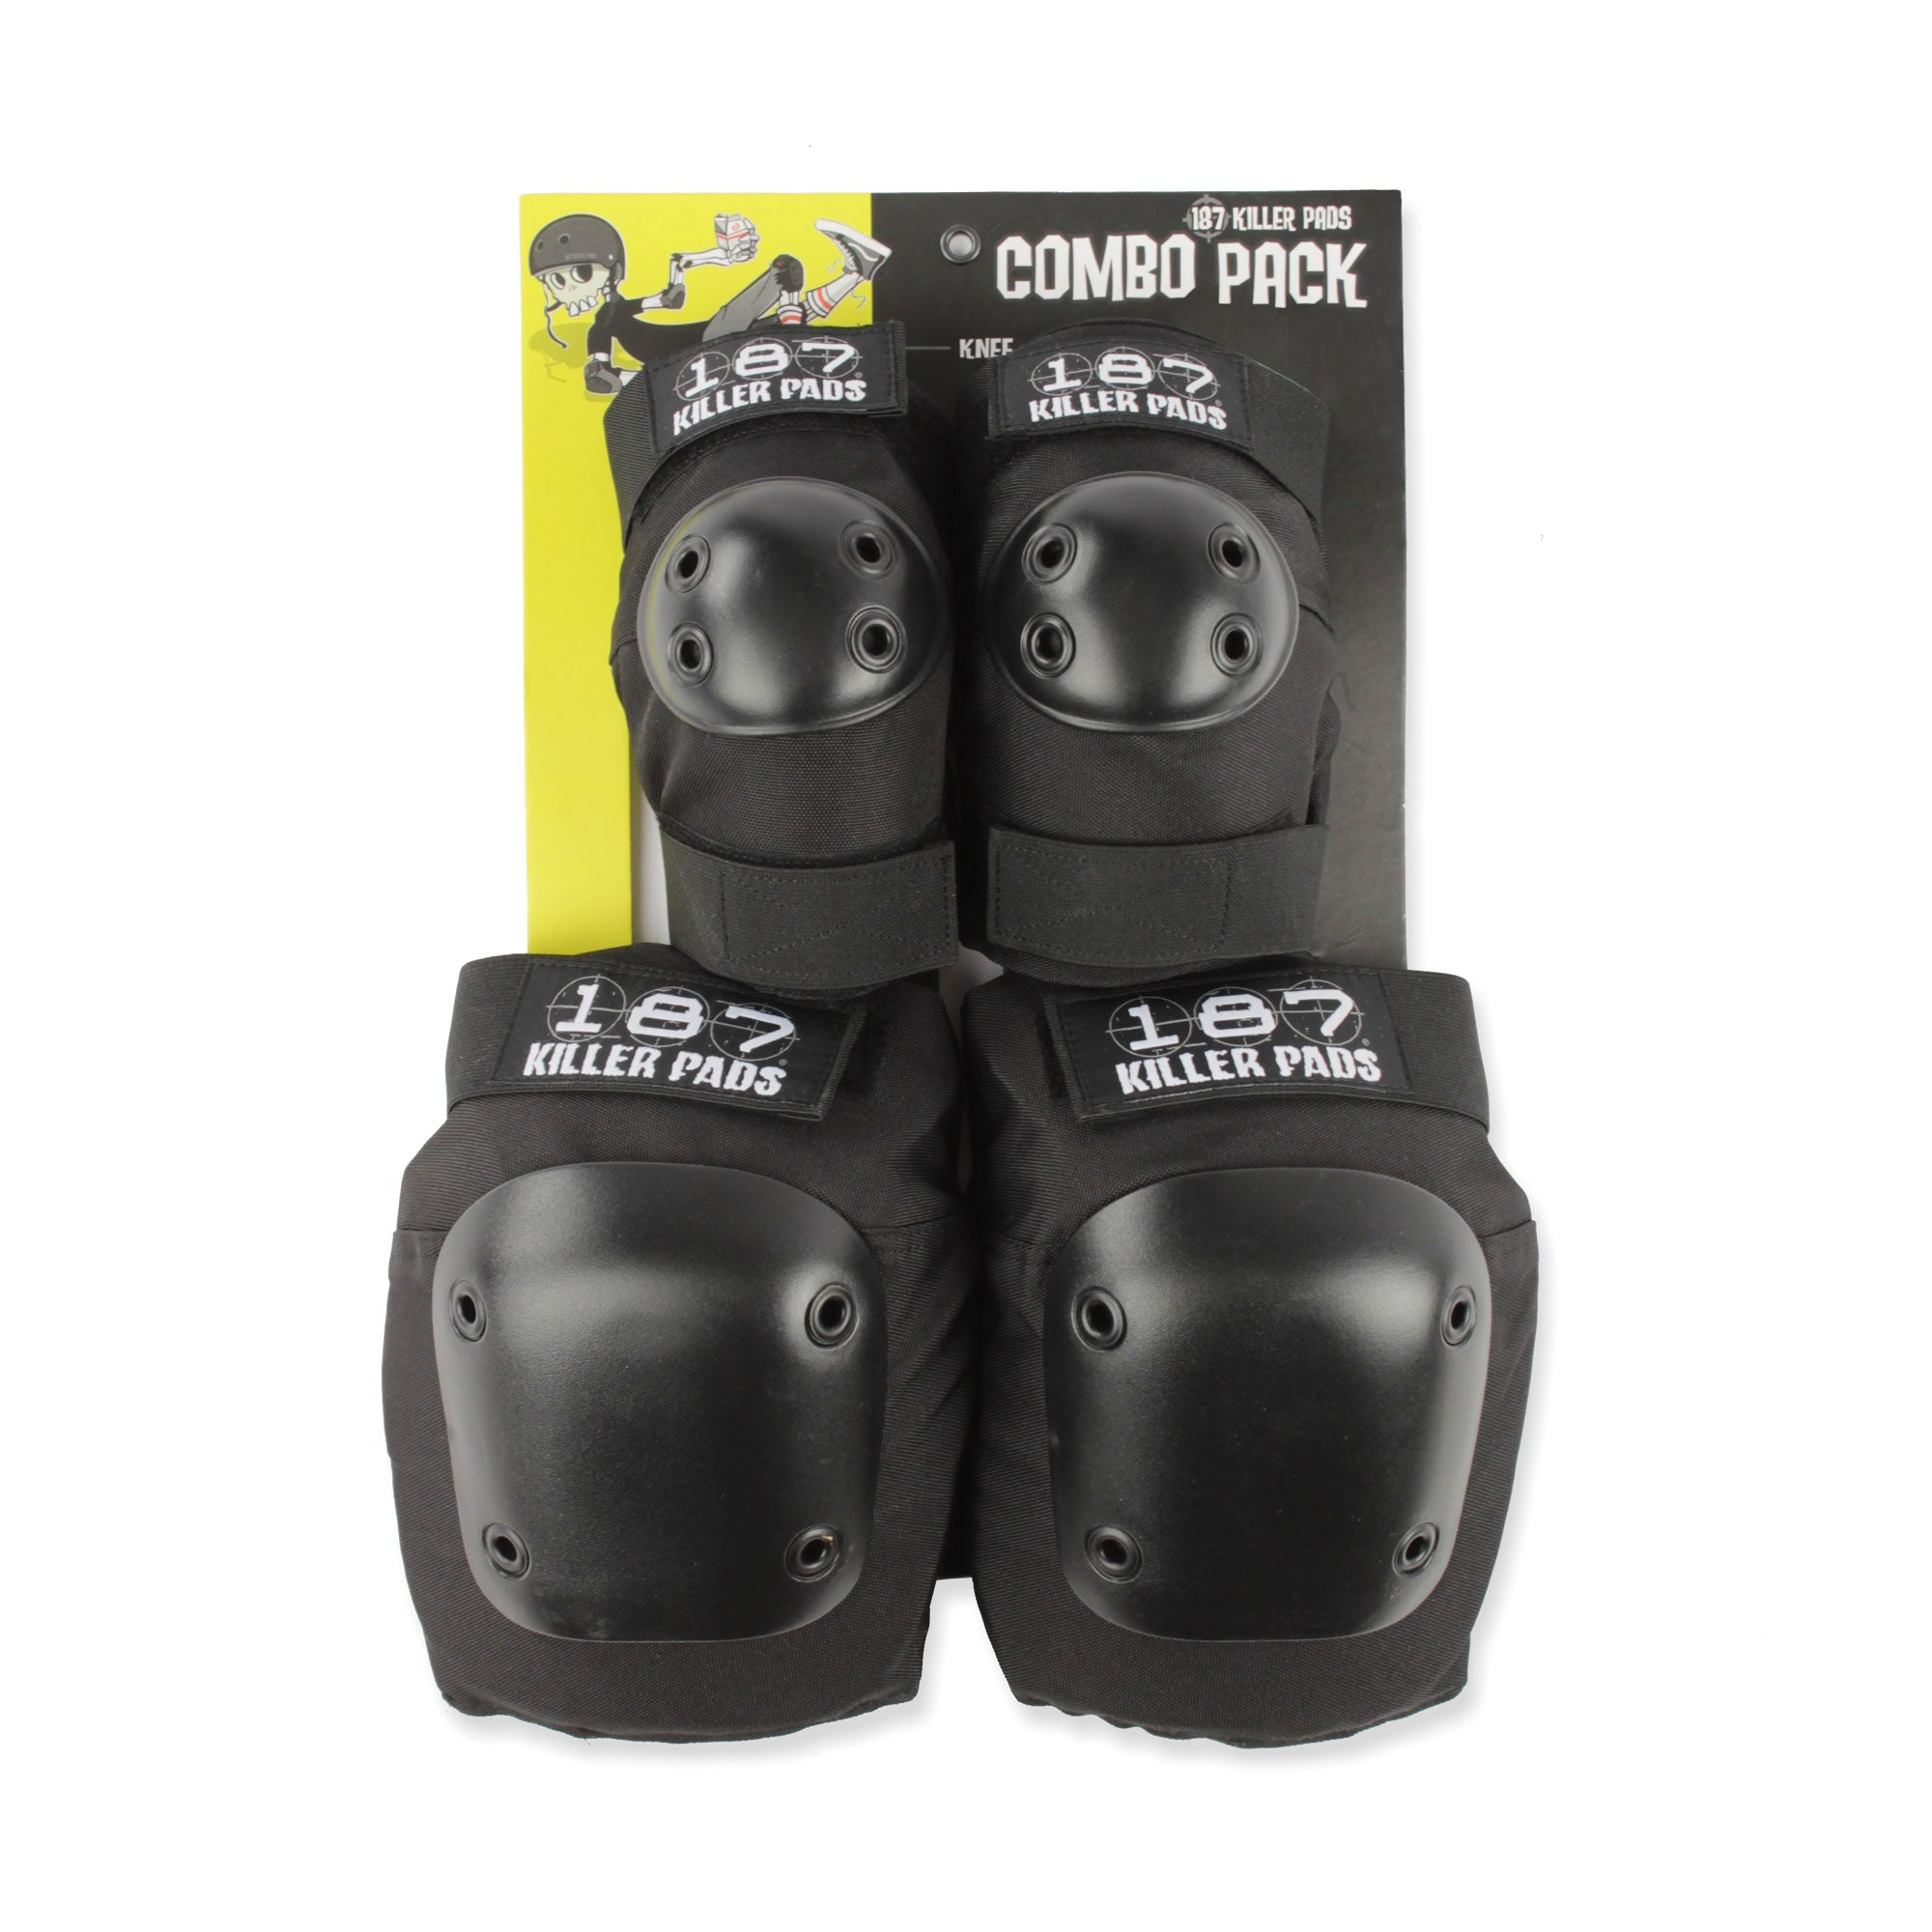 187 Killer Pads Combo Pack Product Photo #1